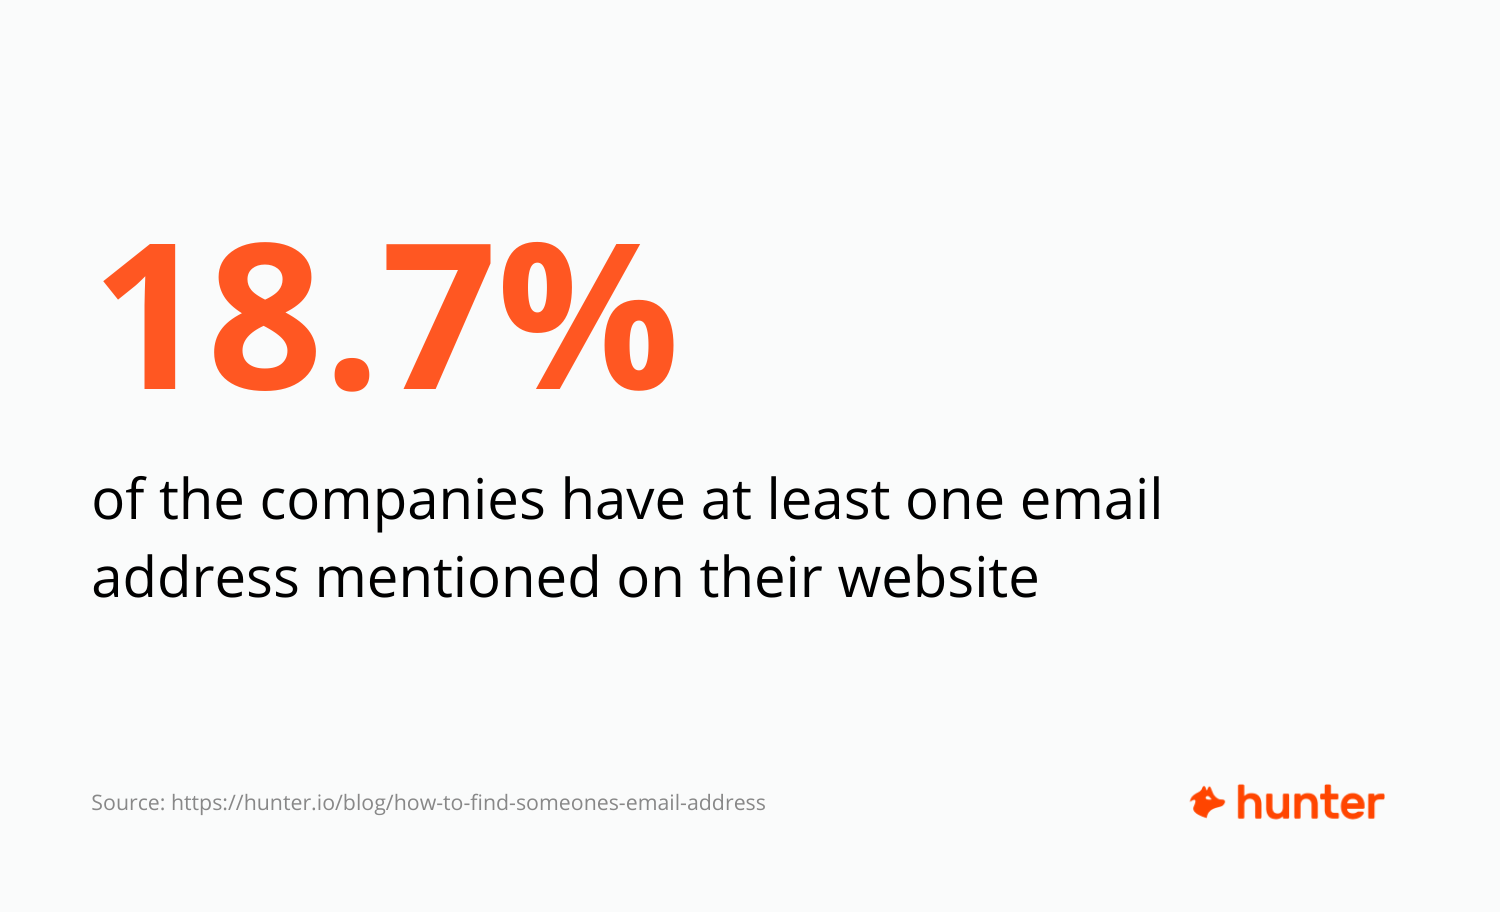 Stats about how many companies mention their email addresses on the website